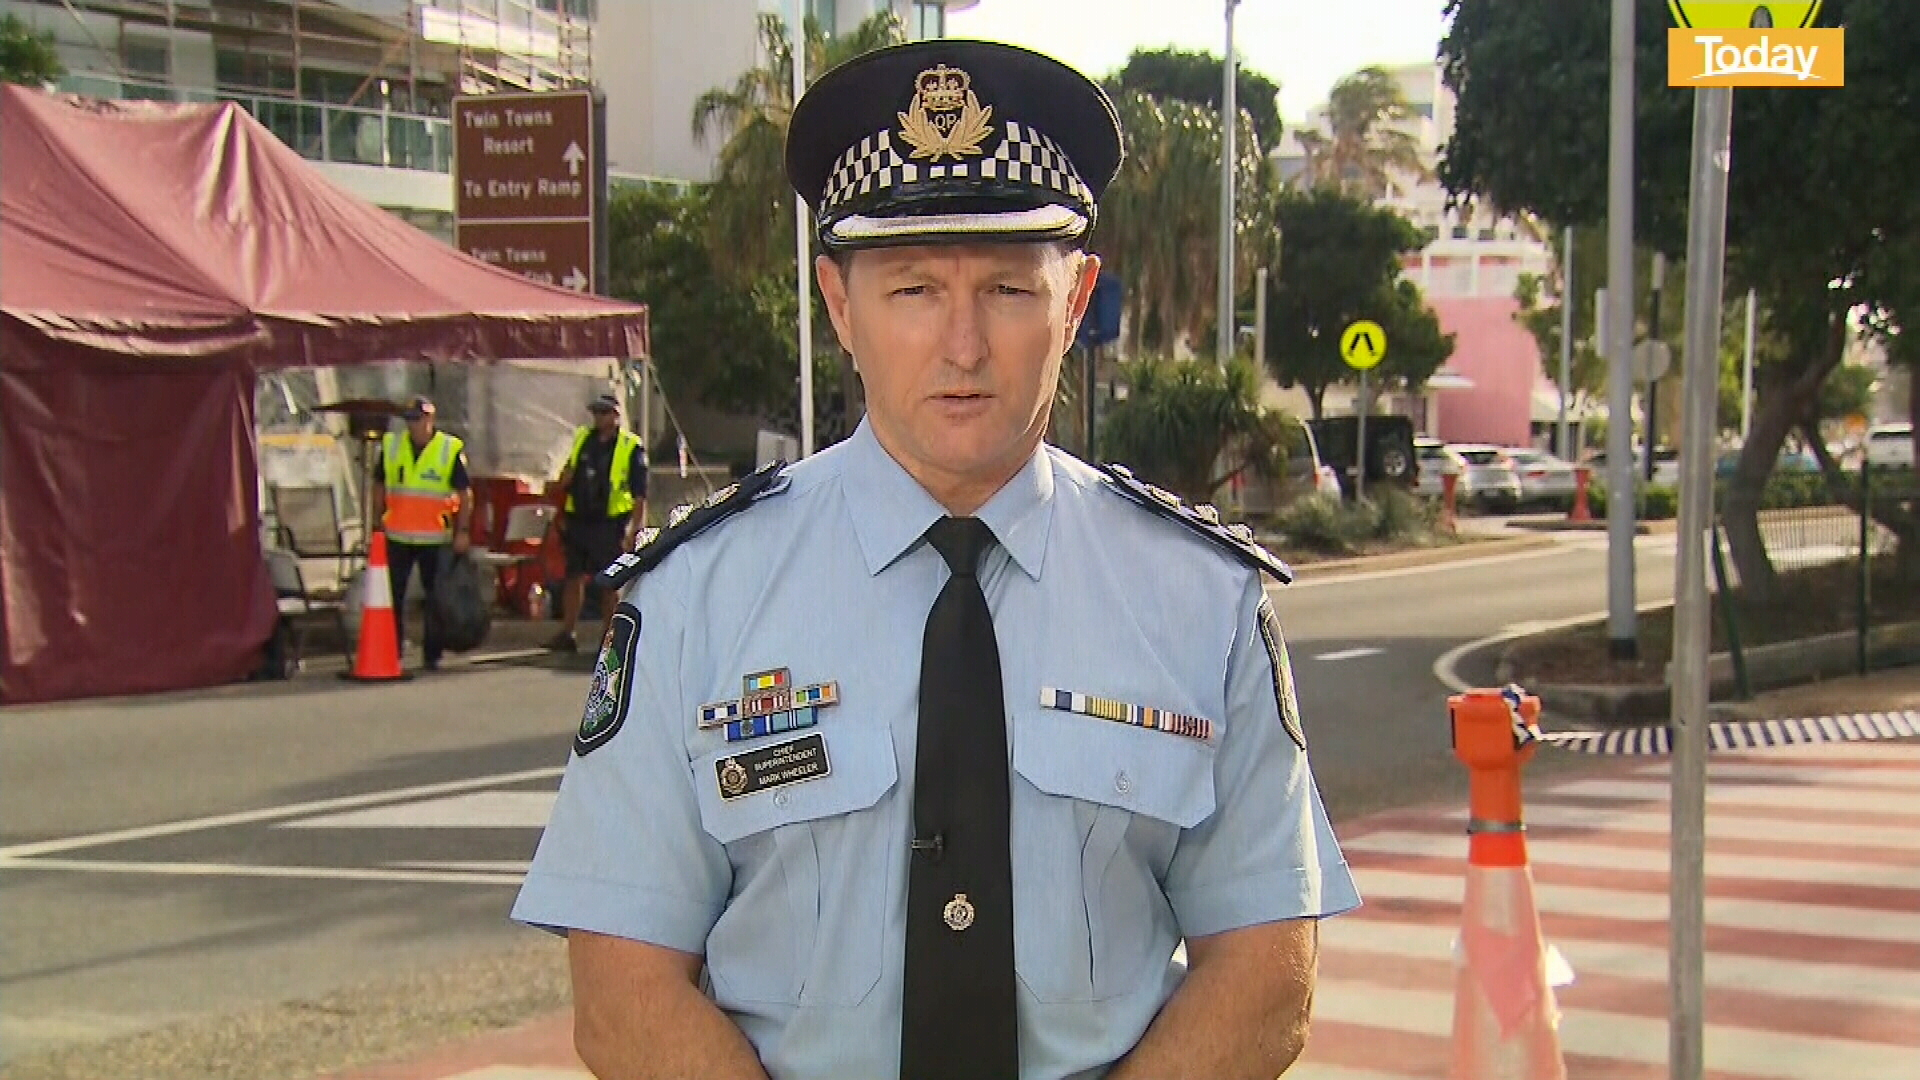 Coronavirus: Queensland Police chief says drivers should expect delays at border checkpoints